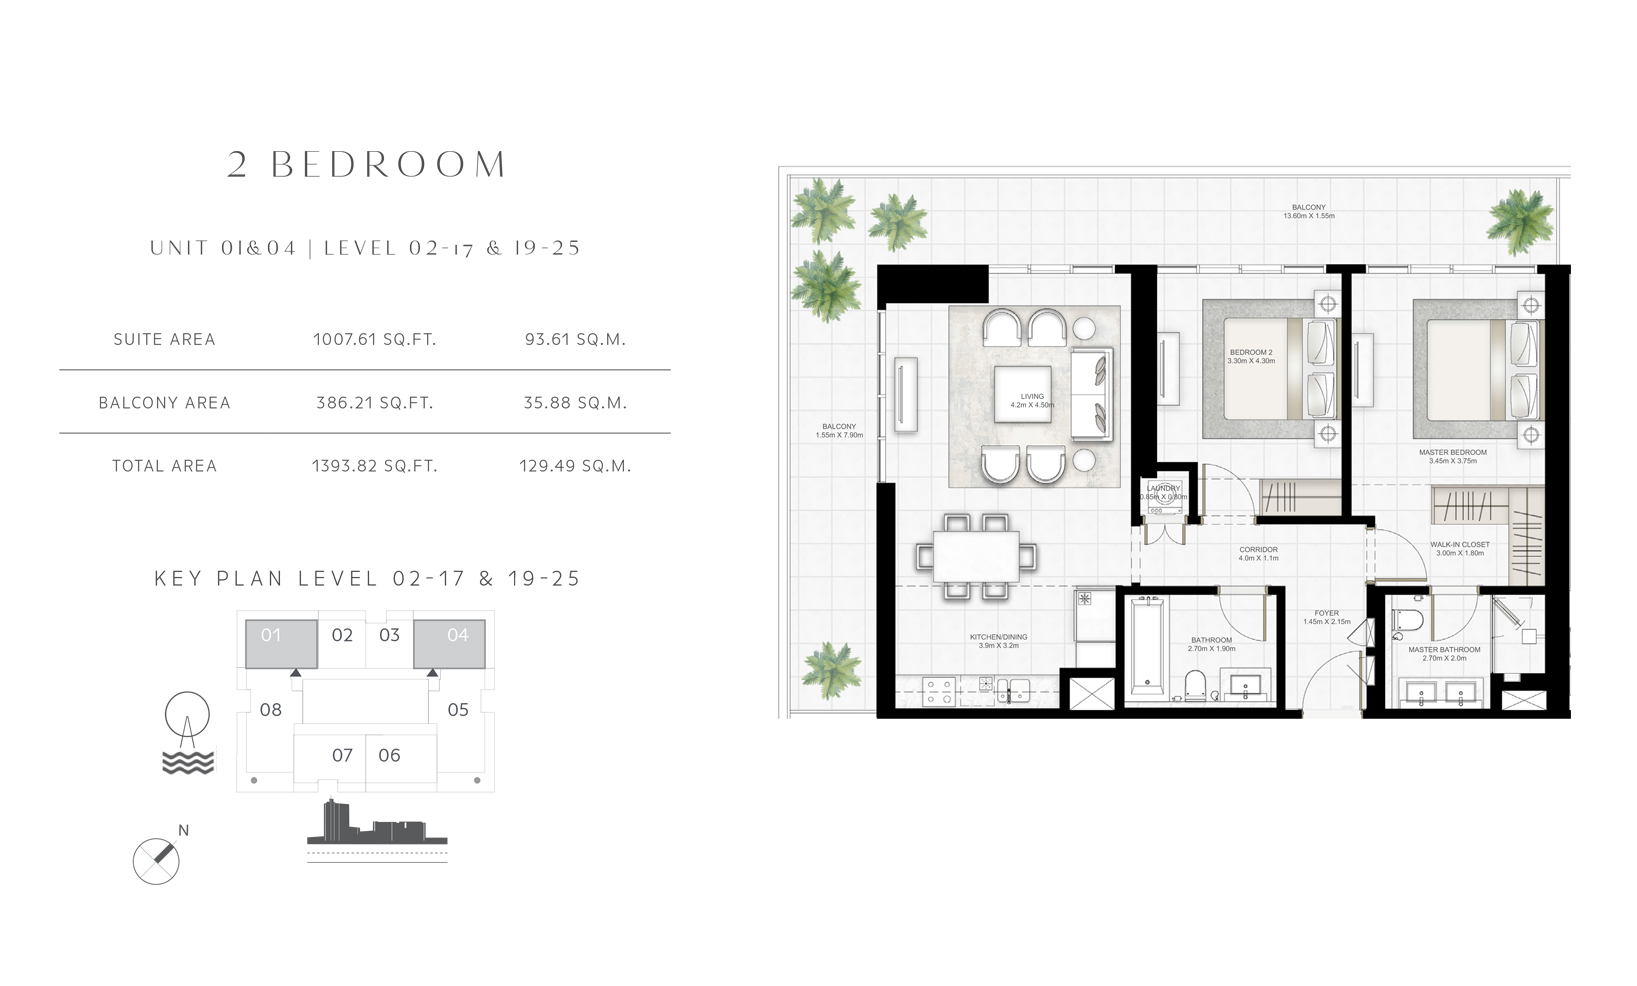 2 Bedroom Unit 01-04 Level 02-17 & 19-25 Size 1393.82 sq.ft